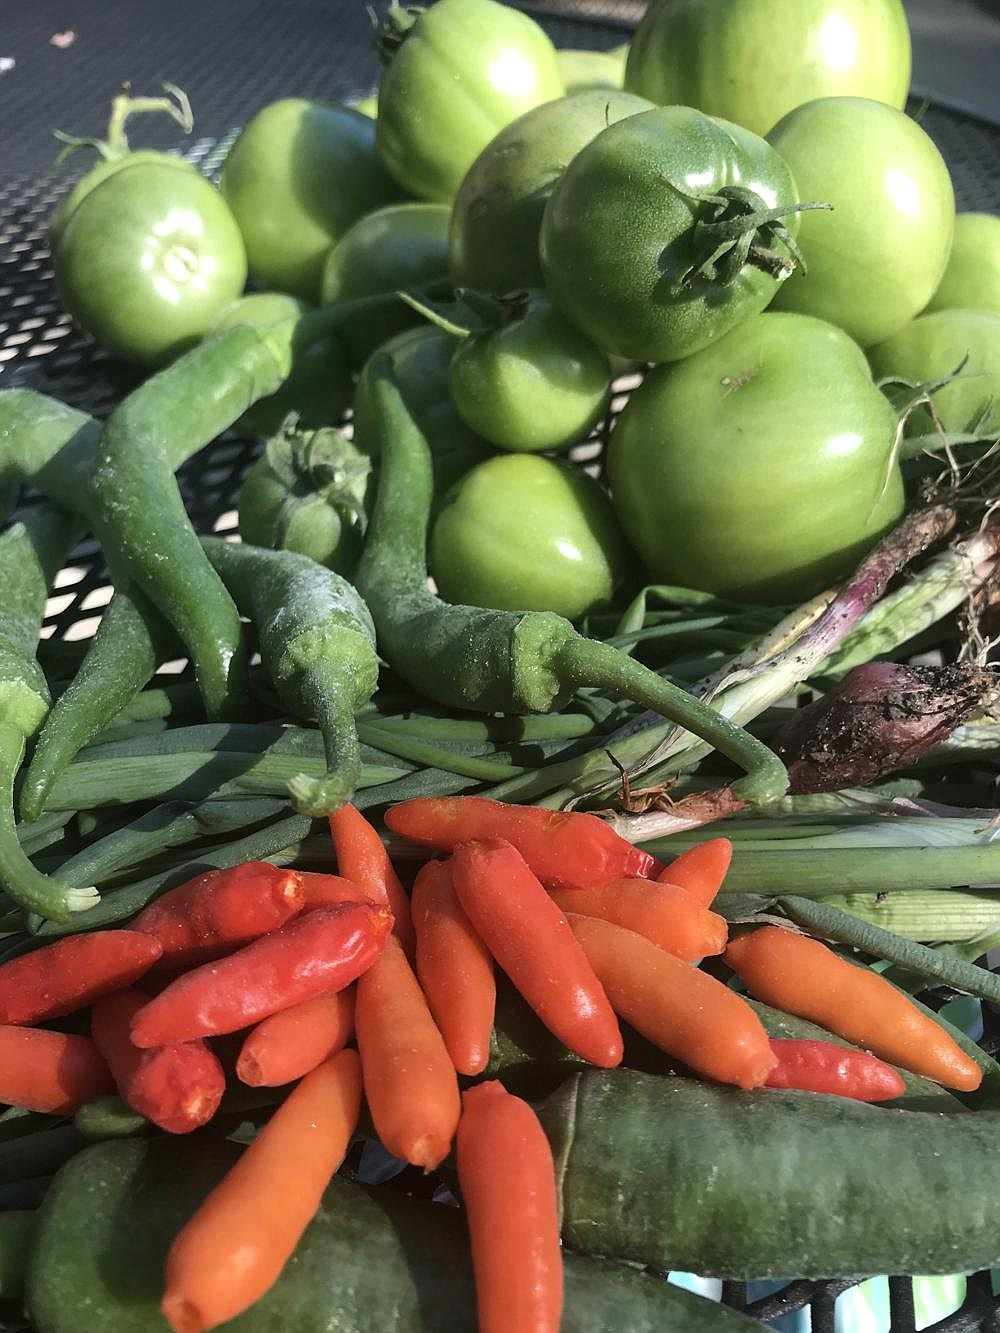 Fall vegetables can brighten up any meal, says the University of Arkansas at Pine Bluff's 1890 Cooperative Extension Program.  (Pine Bluff Commercial/Dale Ellis)